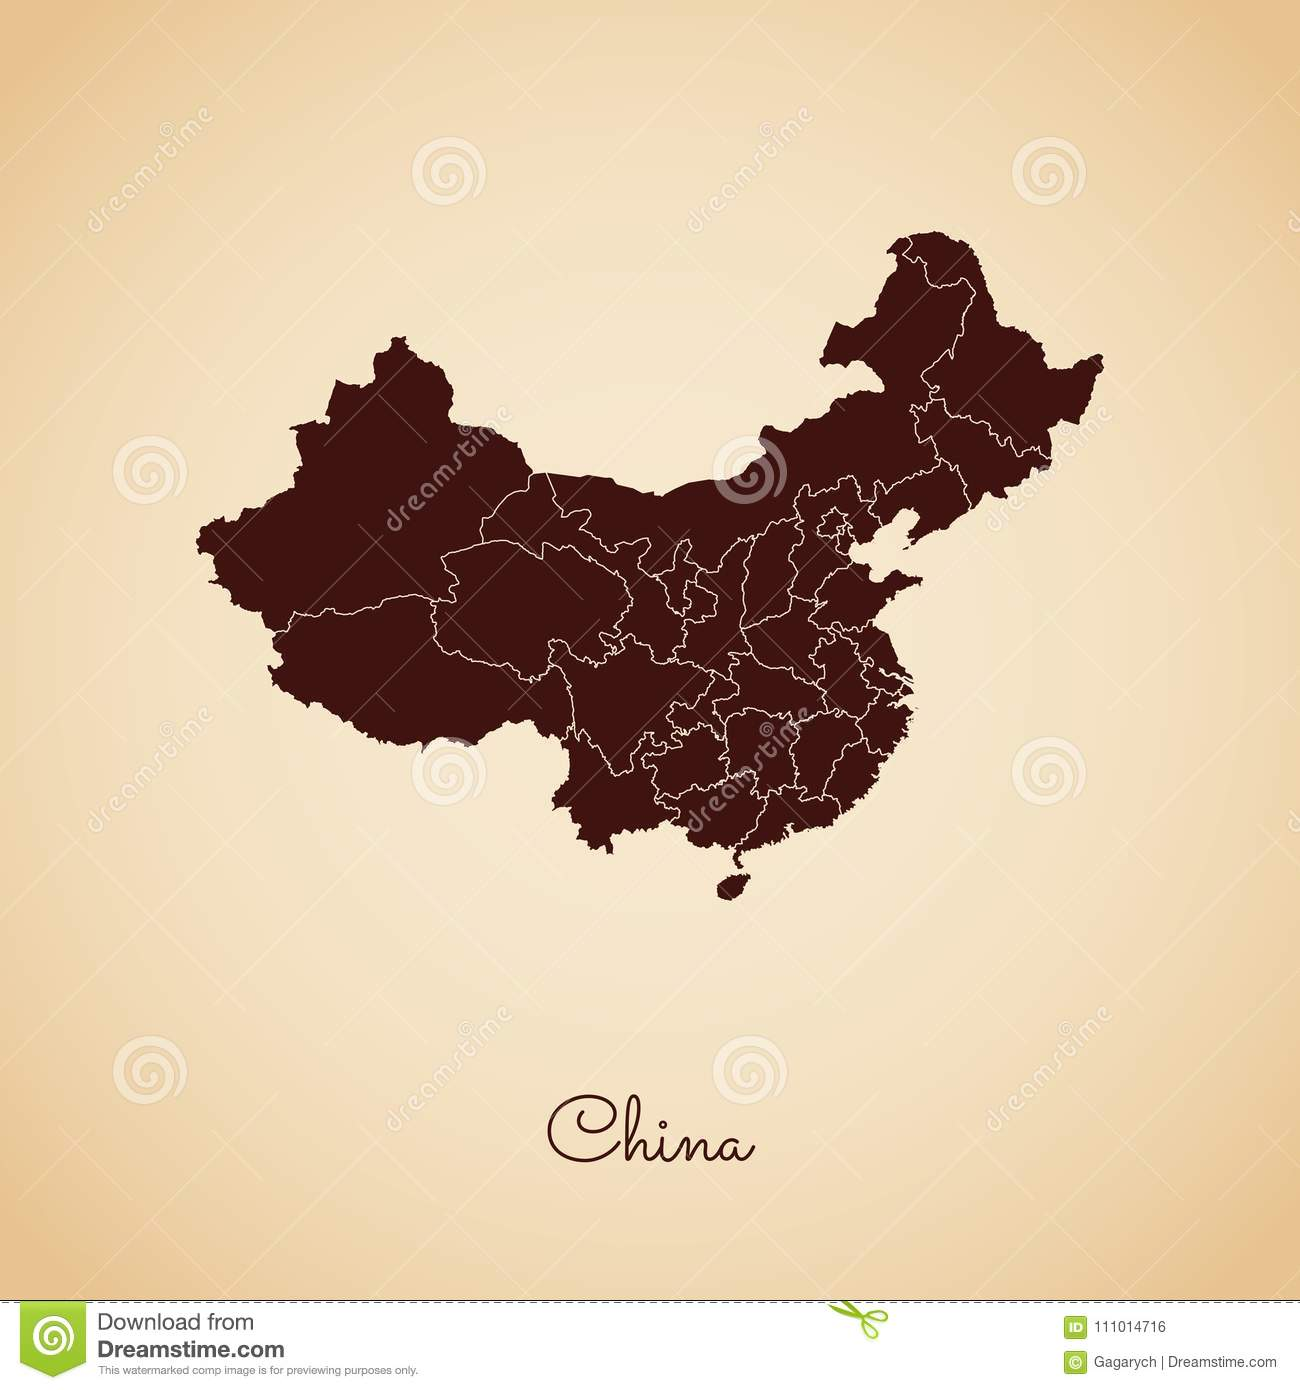 Region Of China Map.China Region Map Retro Style Brown Outline On Stock Vector